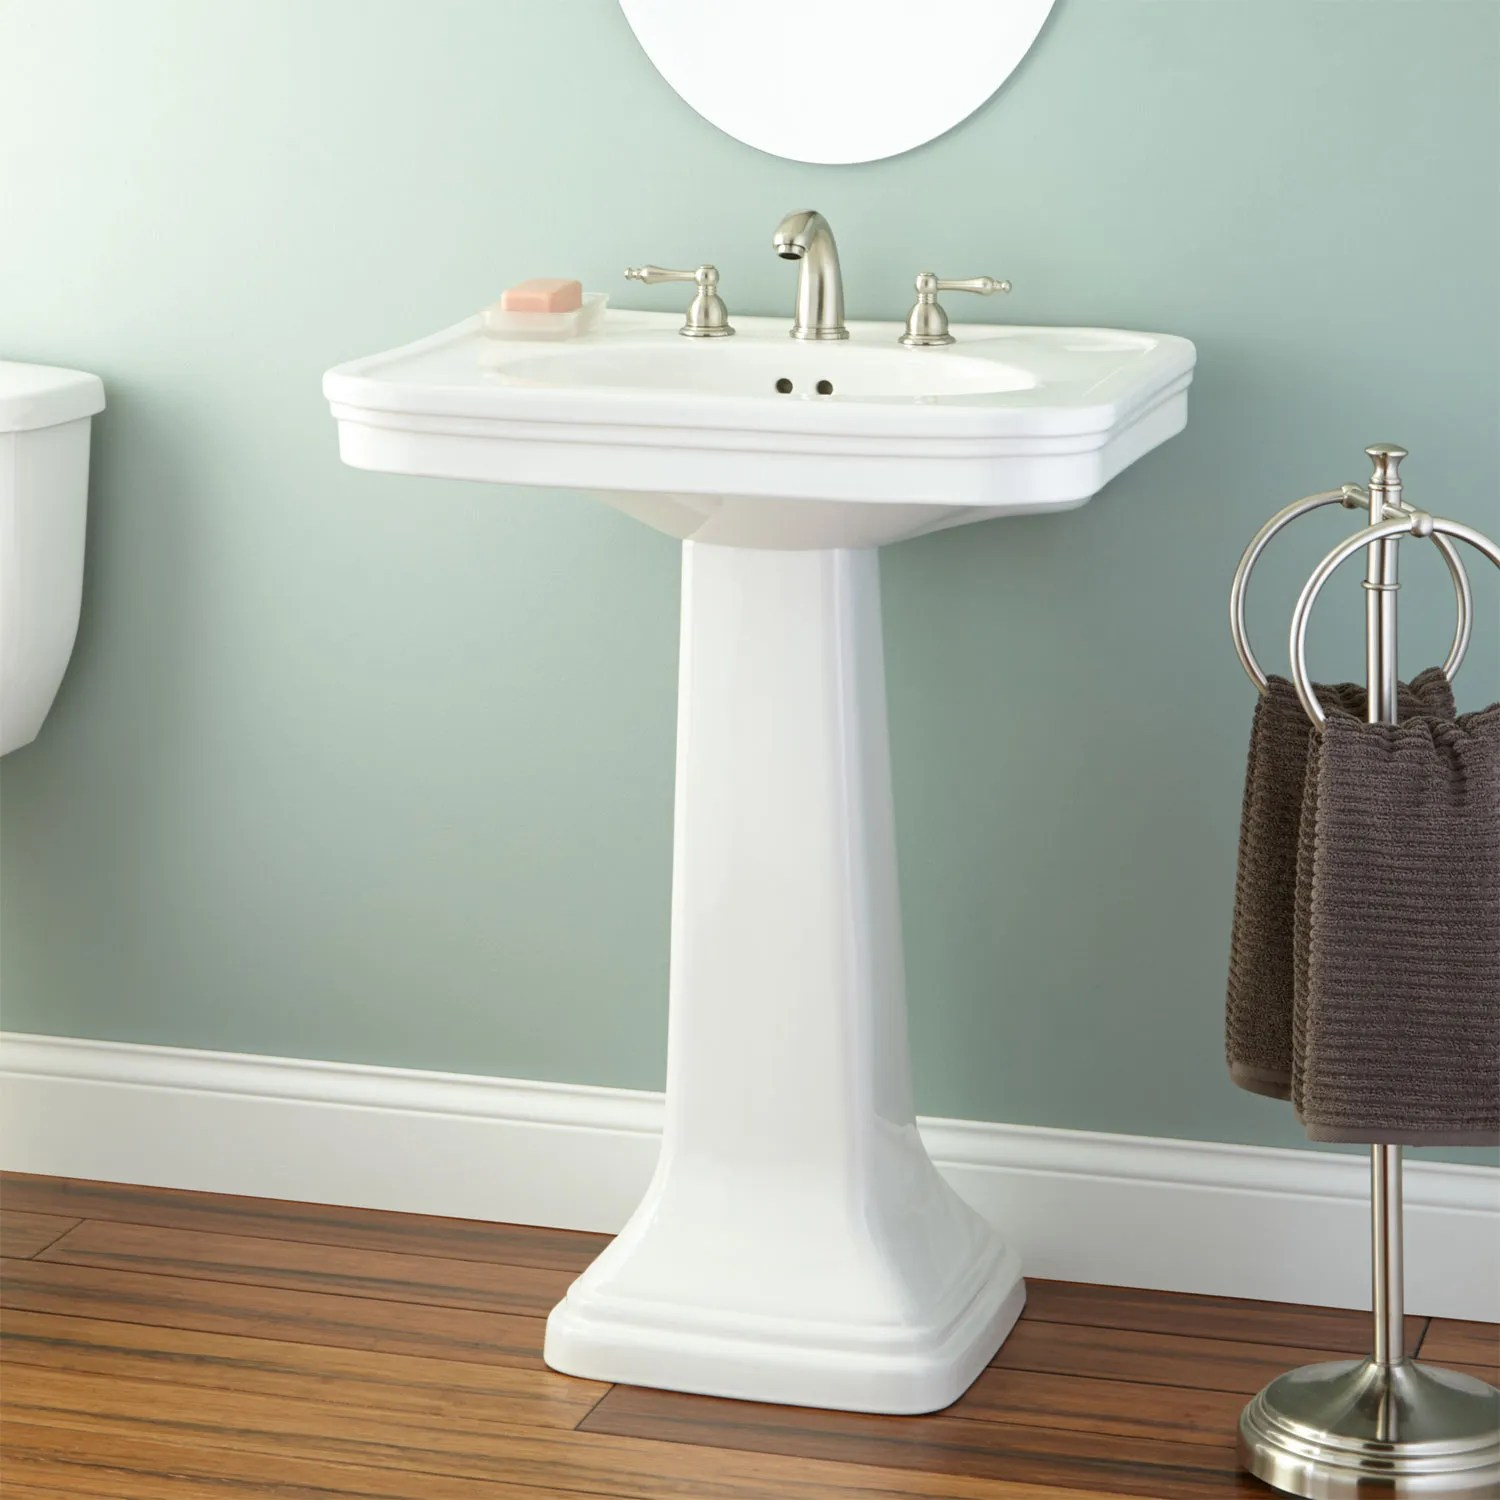 Melus Pedestal Sink Bathroom